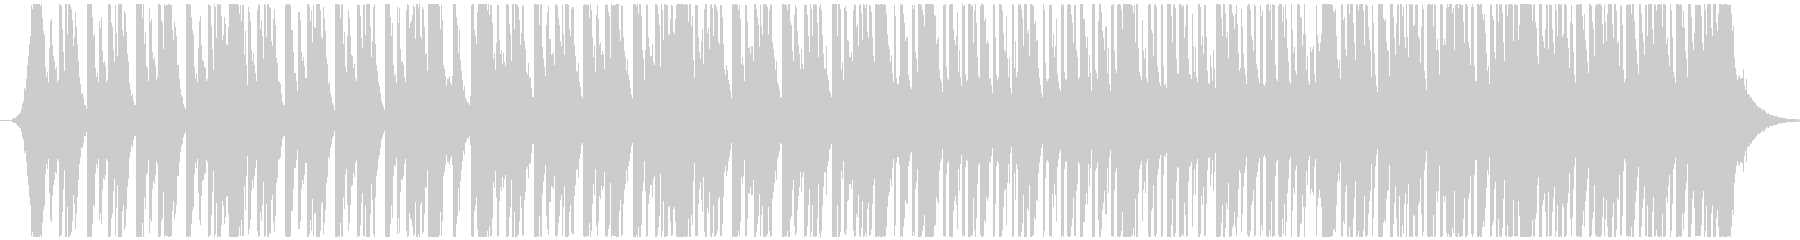 Percussion Music's unreproduced waveform